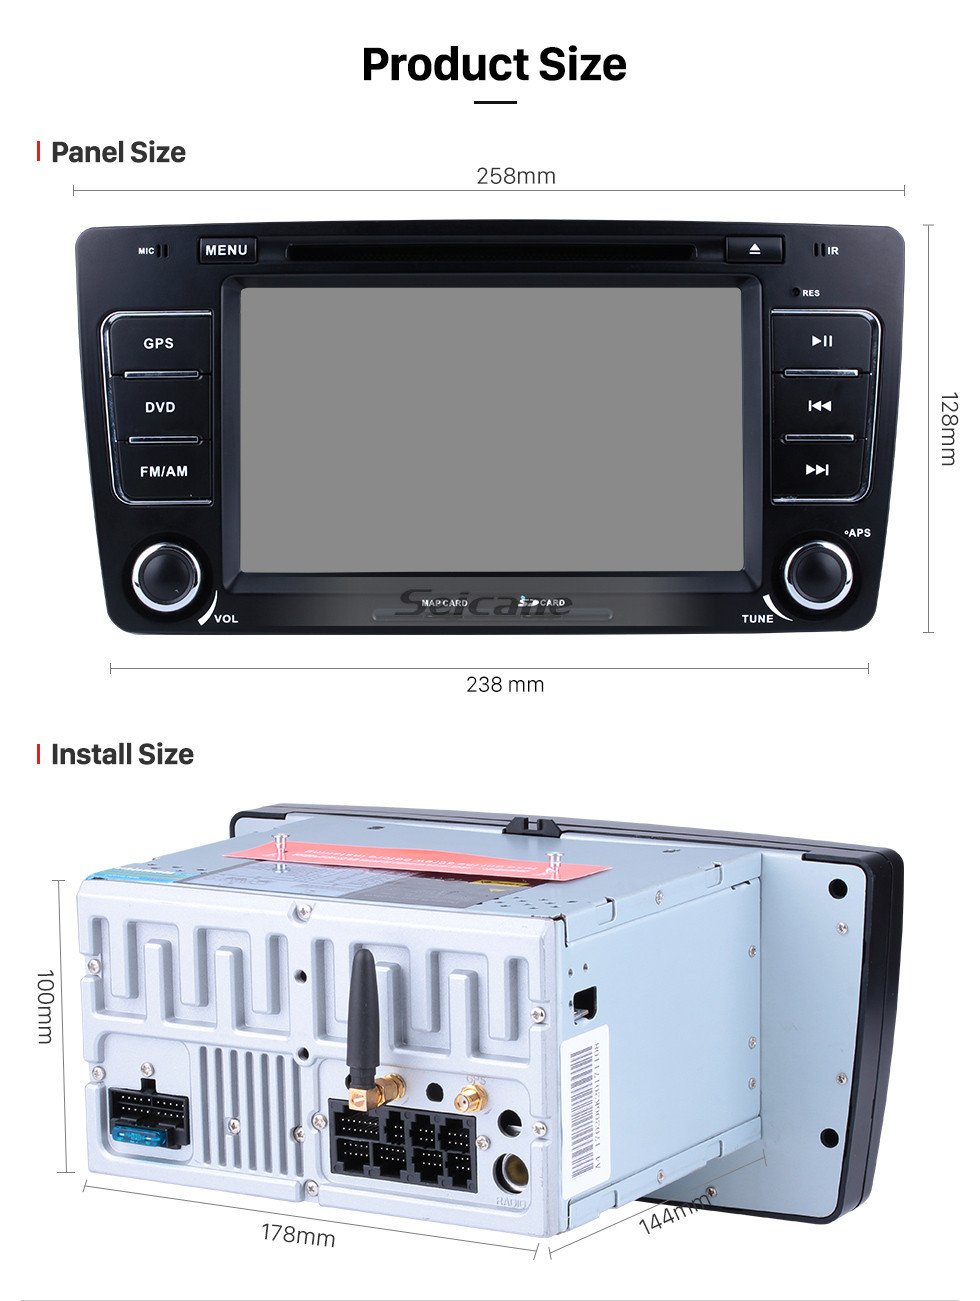 Seicane OEM Android 10.0 Multi-touch GPS Sound System Upgrade for 2011 2012 2013 Skoda Octavia with Radio Tuner DVD 3G WiFi Mirror Link Bluetooth AUX OBD2